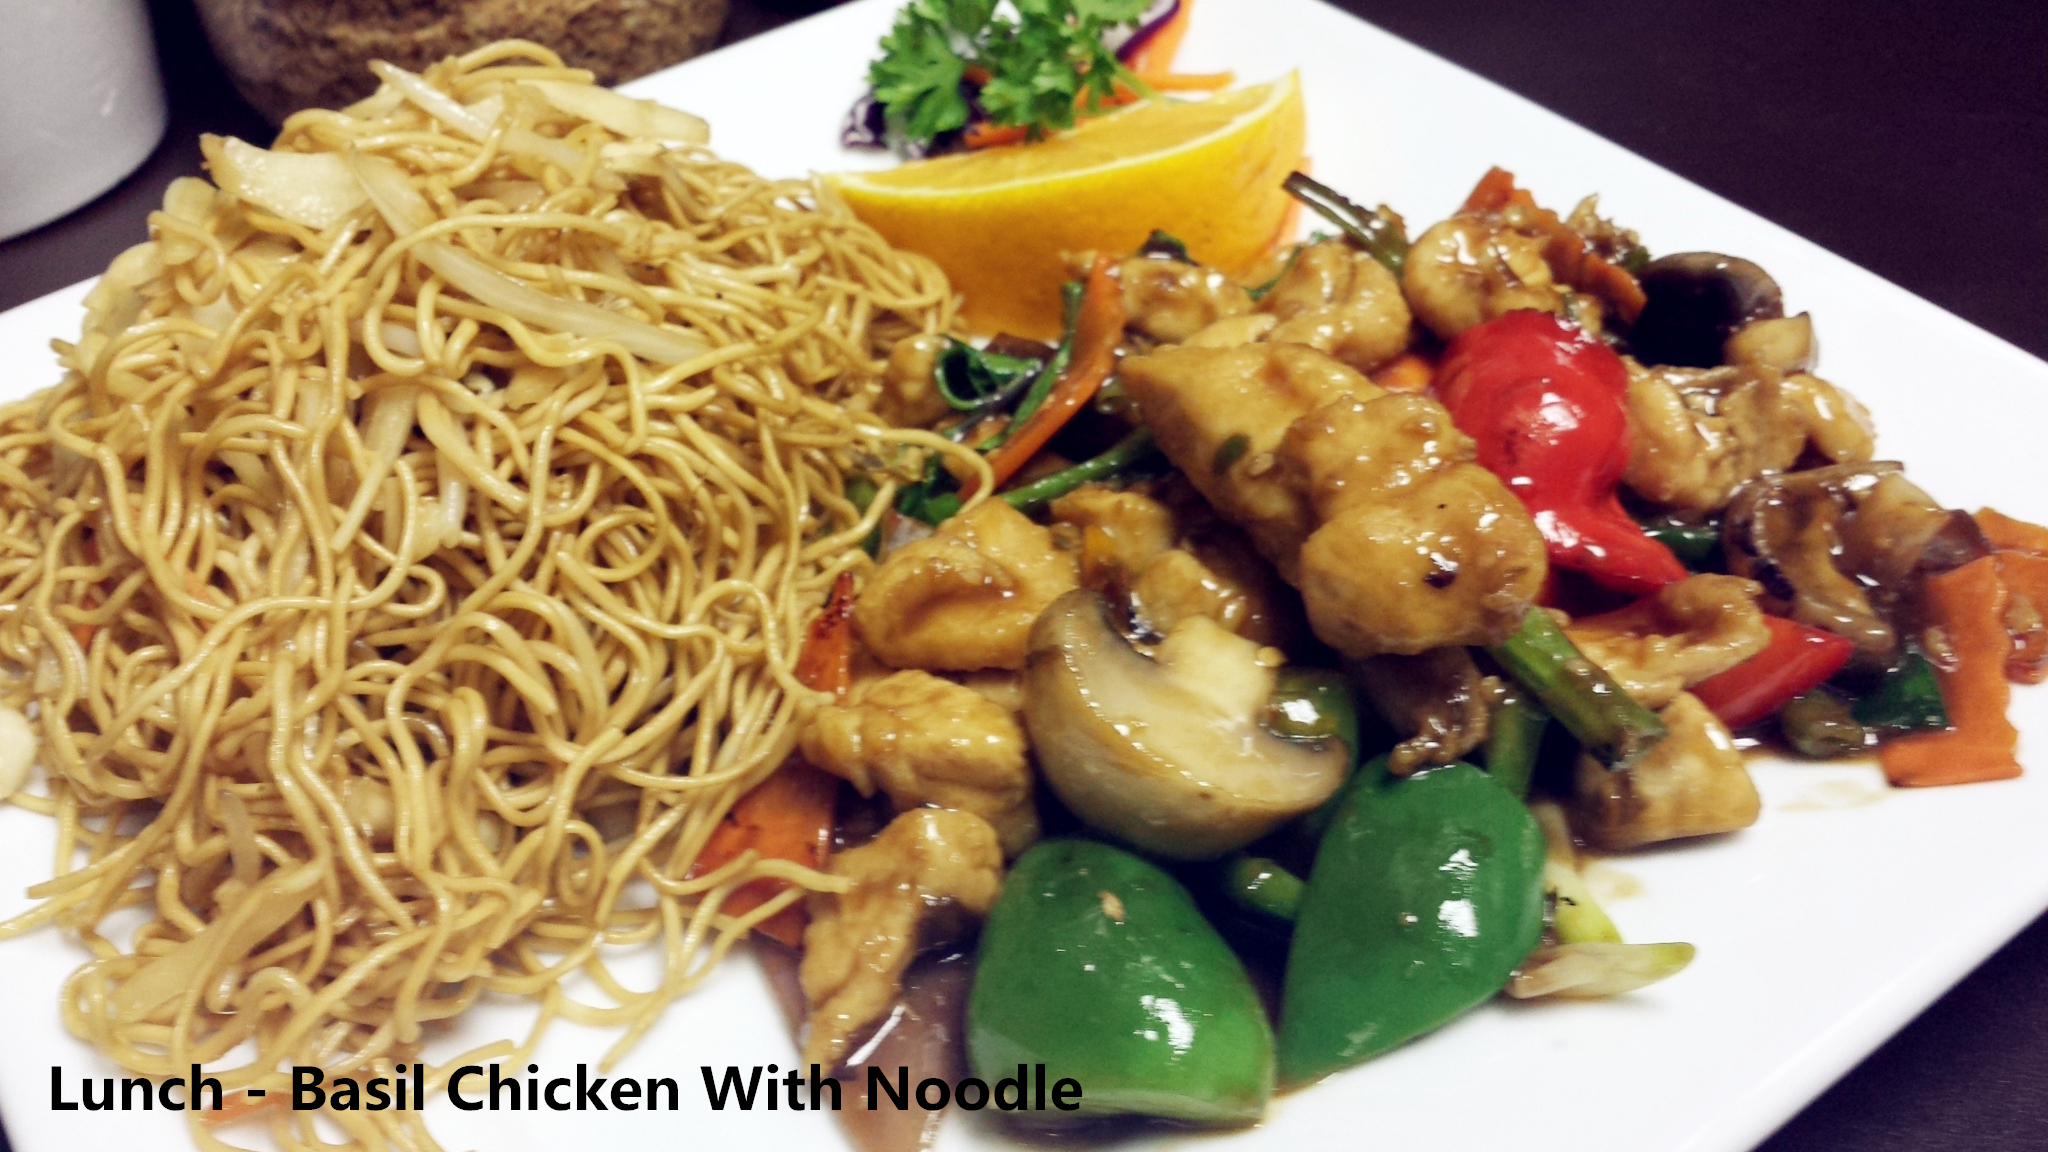 Lunch special menu asian fusion 168 for Asian 168 cuisine